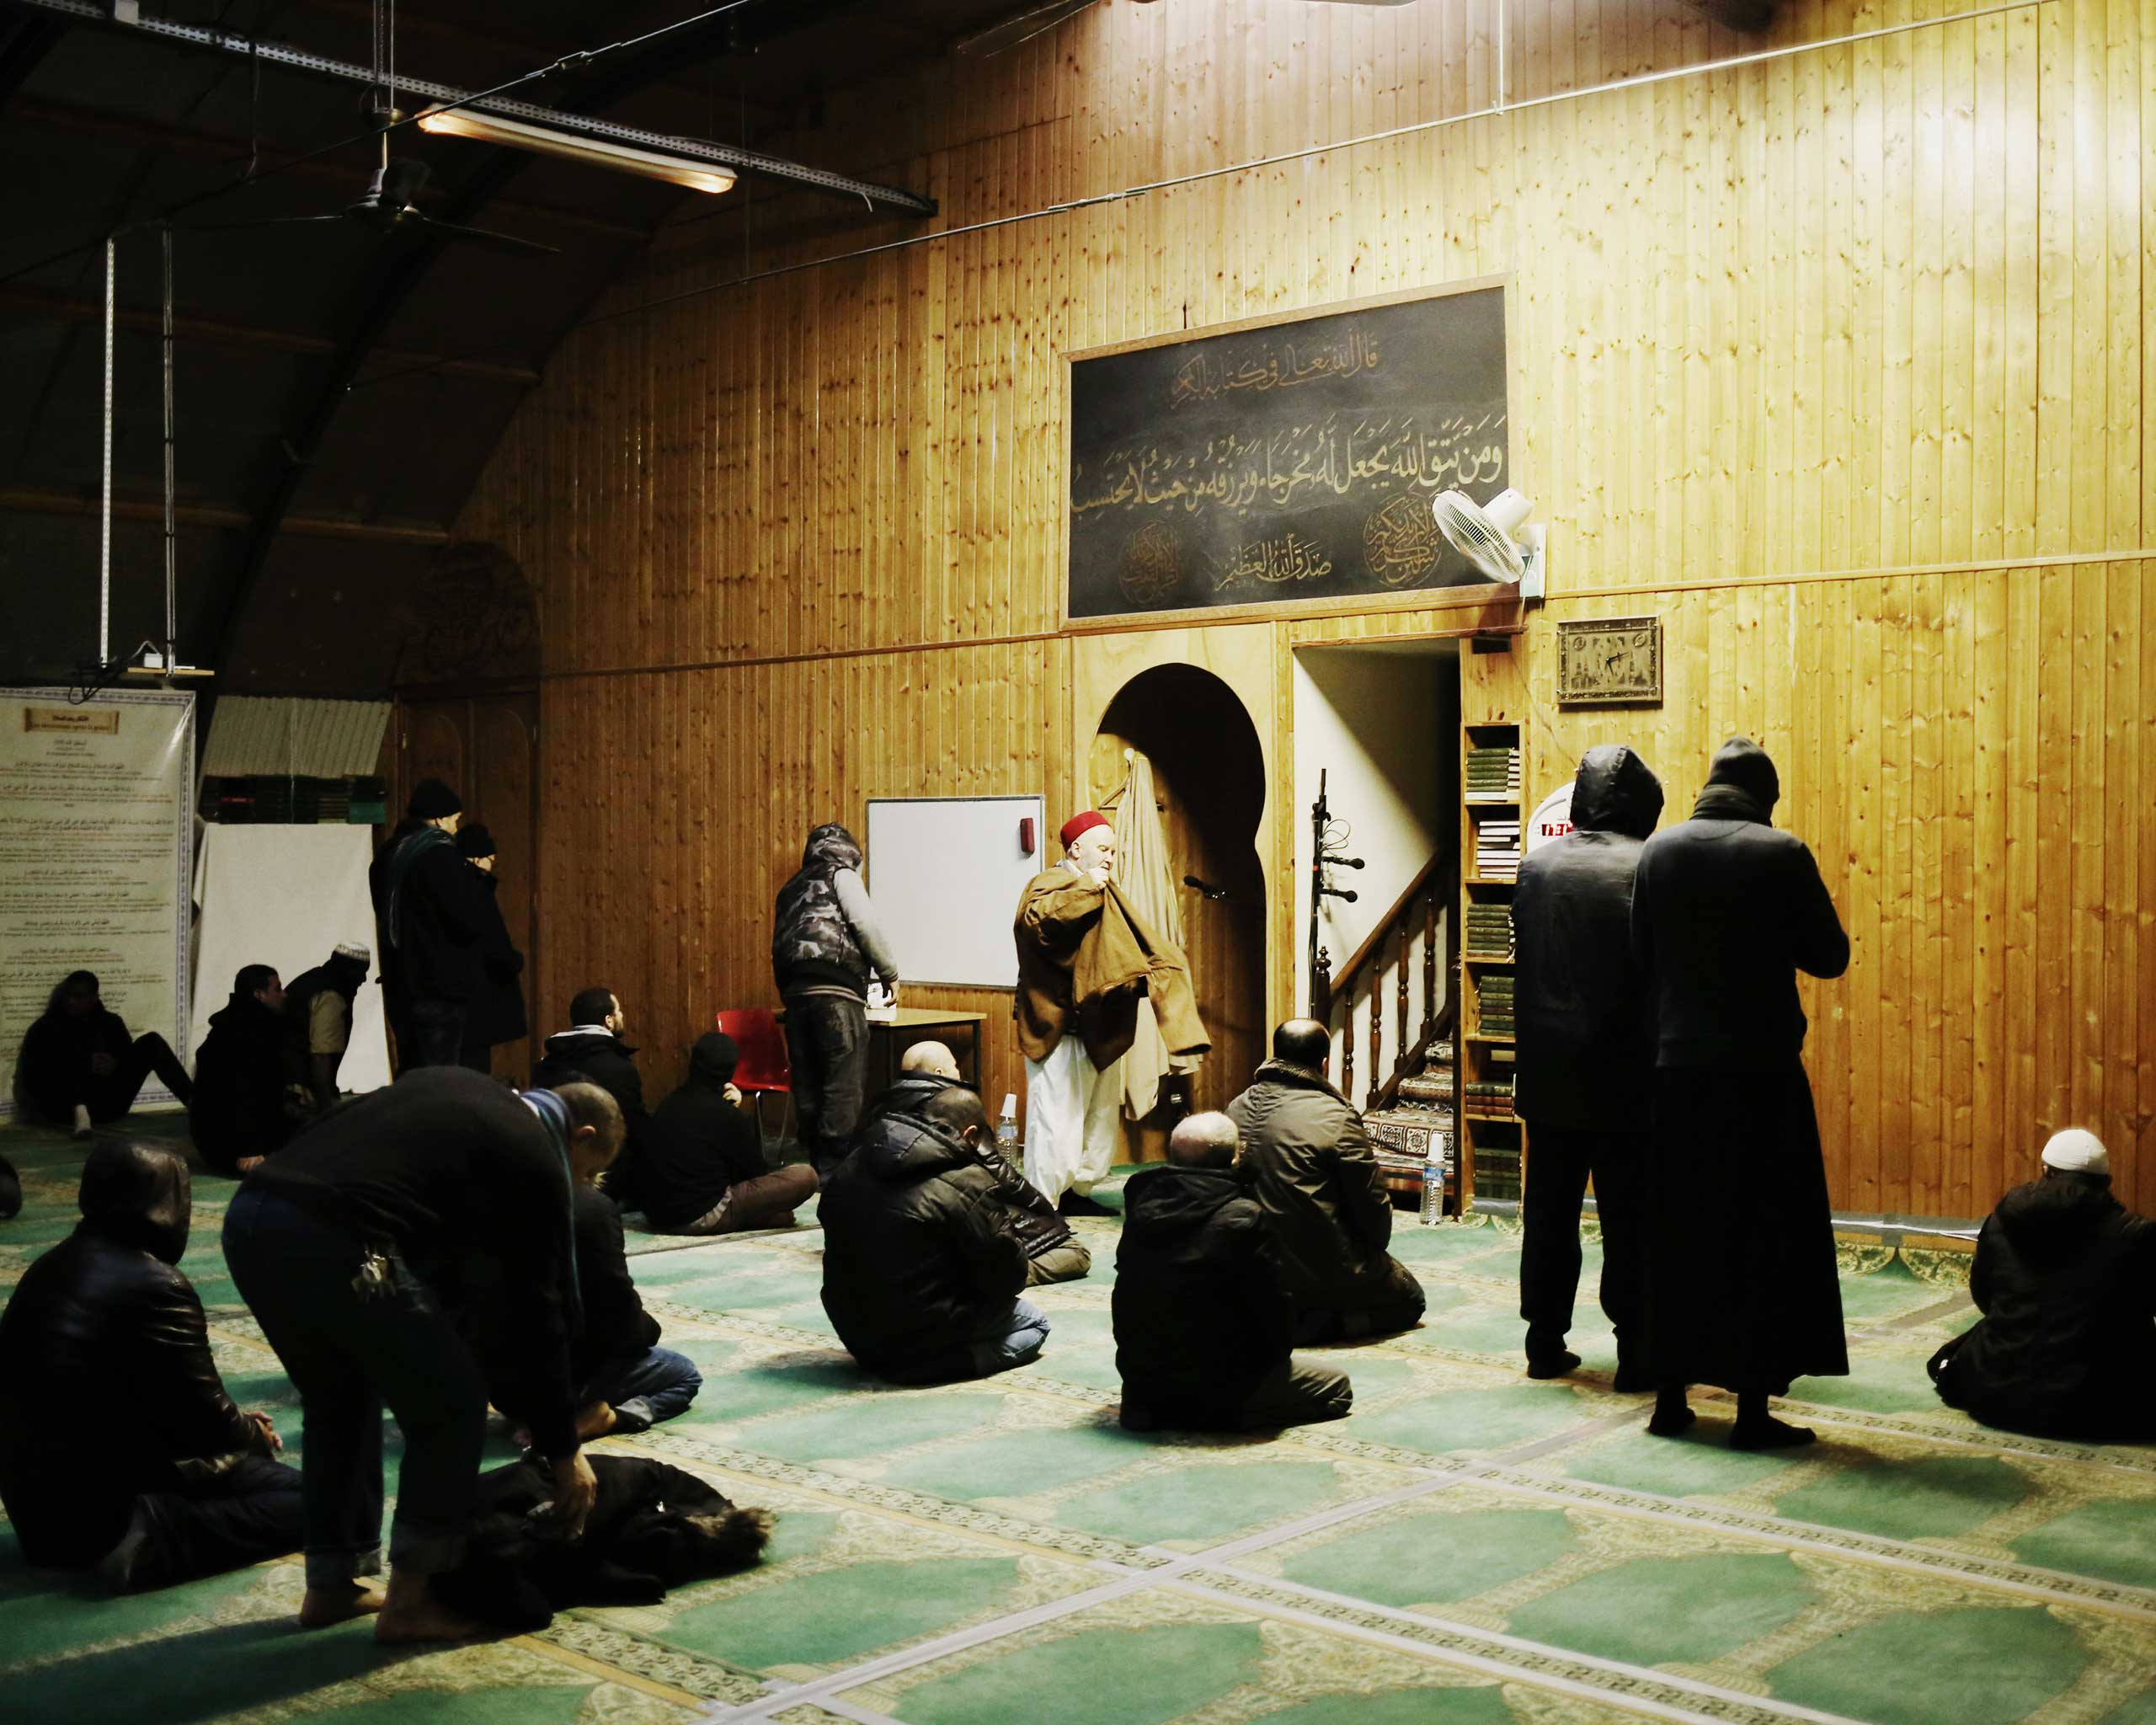 Men pray at a mosque in the 19th arrondissement in Paris, which the Kouachi brothers, the Charlie Hebdo attackers, had once attended, Jan. 13, 2015.